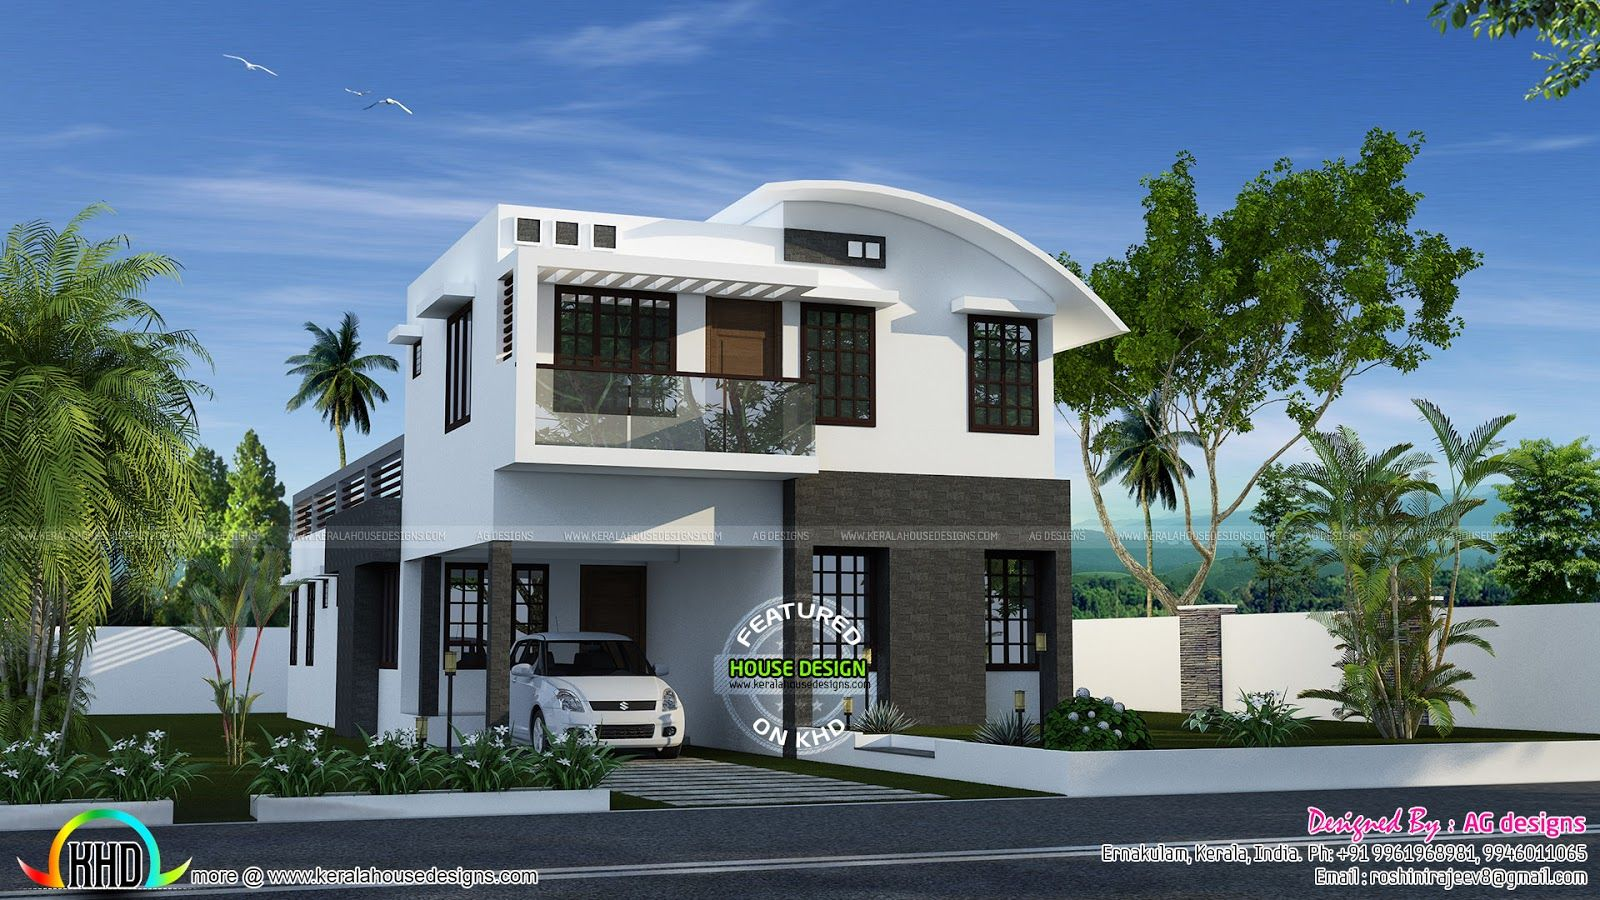 Home design compact slate 30x40 house front elevation for New kerala house plans with front elevation